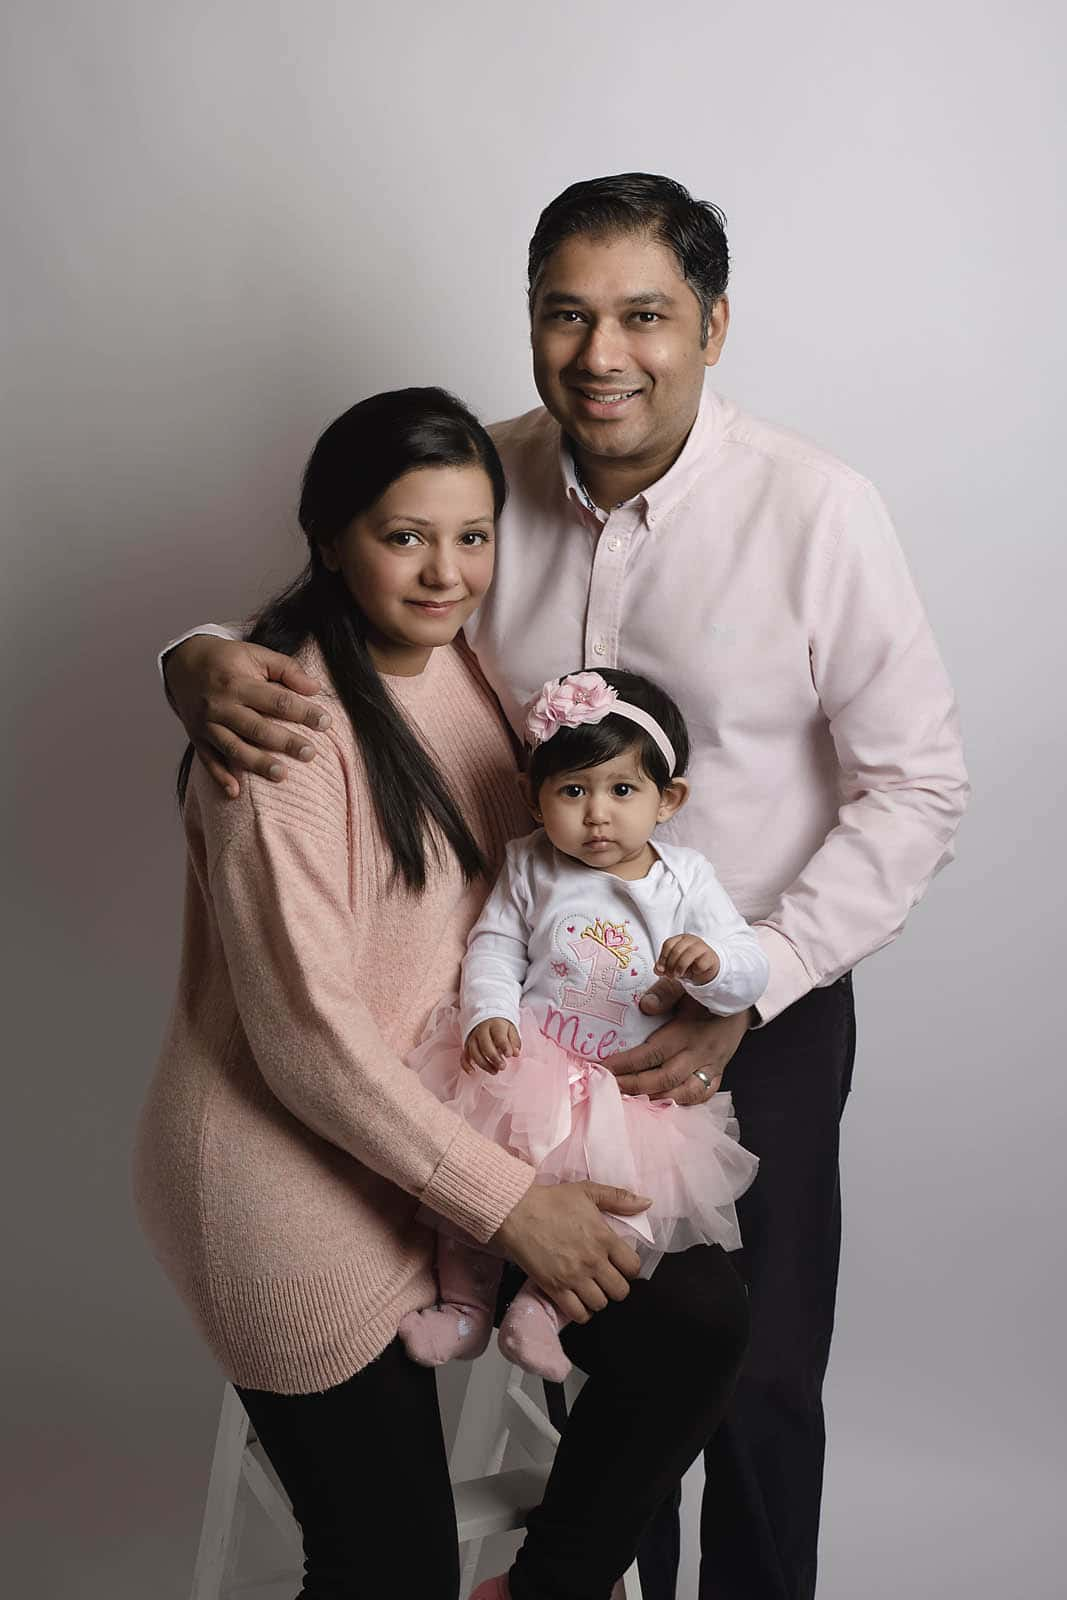 family portrait taken by family photography manchester